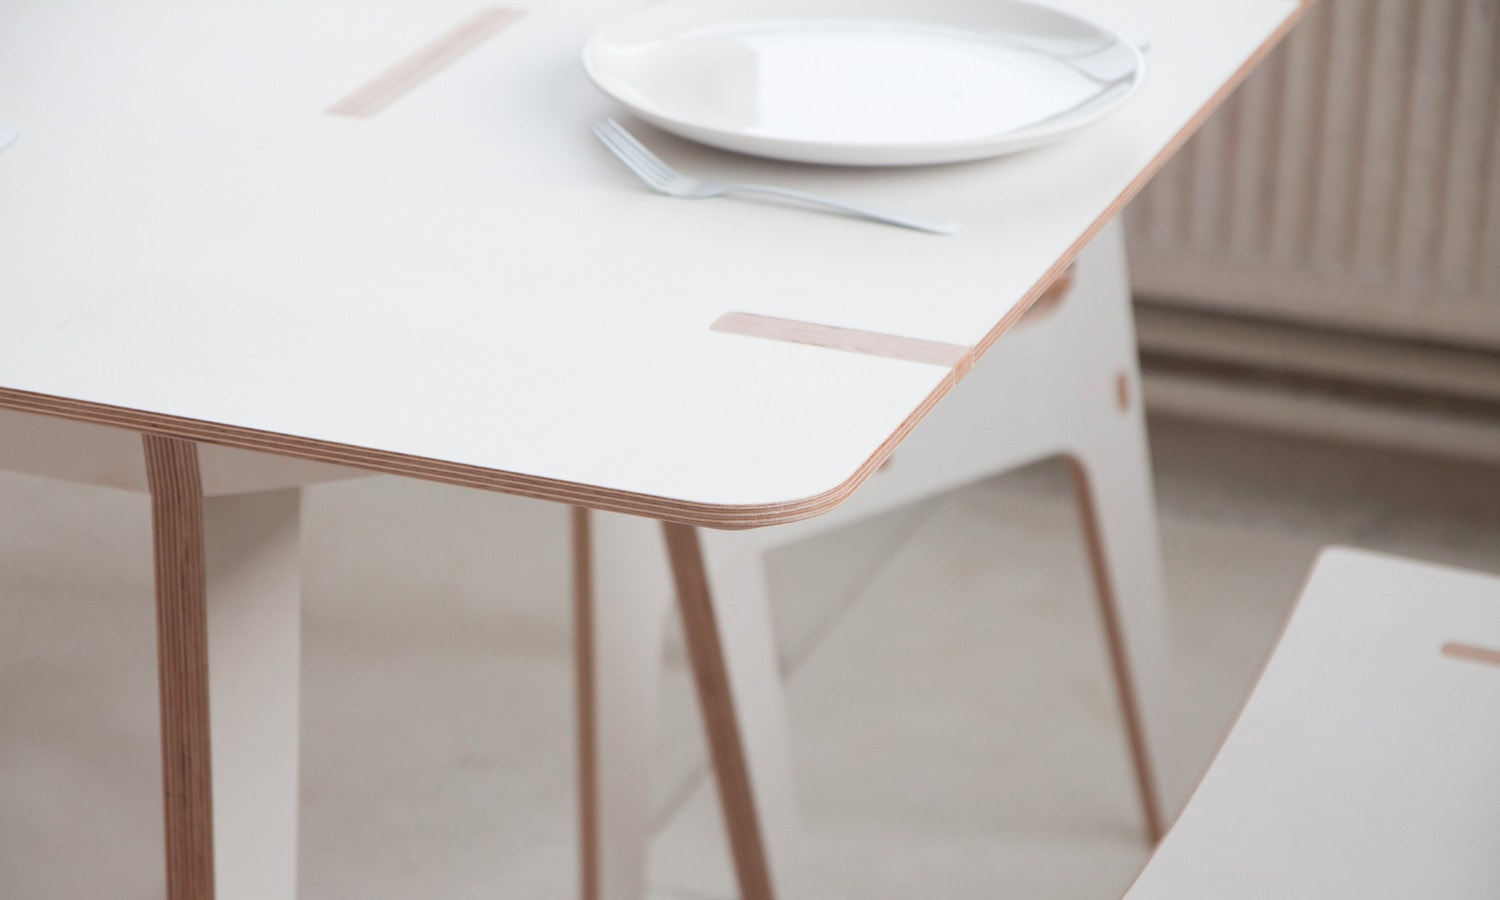 The dining room collection is inspired by the aesthetics of Viking boats, which influenced the shape of the furniture as well as the name. I designed the dining room furniture with visible joints, which create aesthetic details making the furniture unique. The parts from which the furniture is assembled are CNC cut with 5 axis from birch multiplex boards. Design by Jiri Krejcirik.